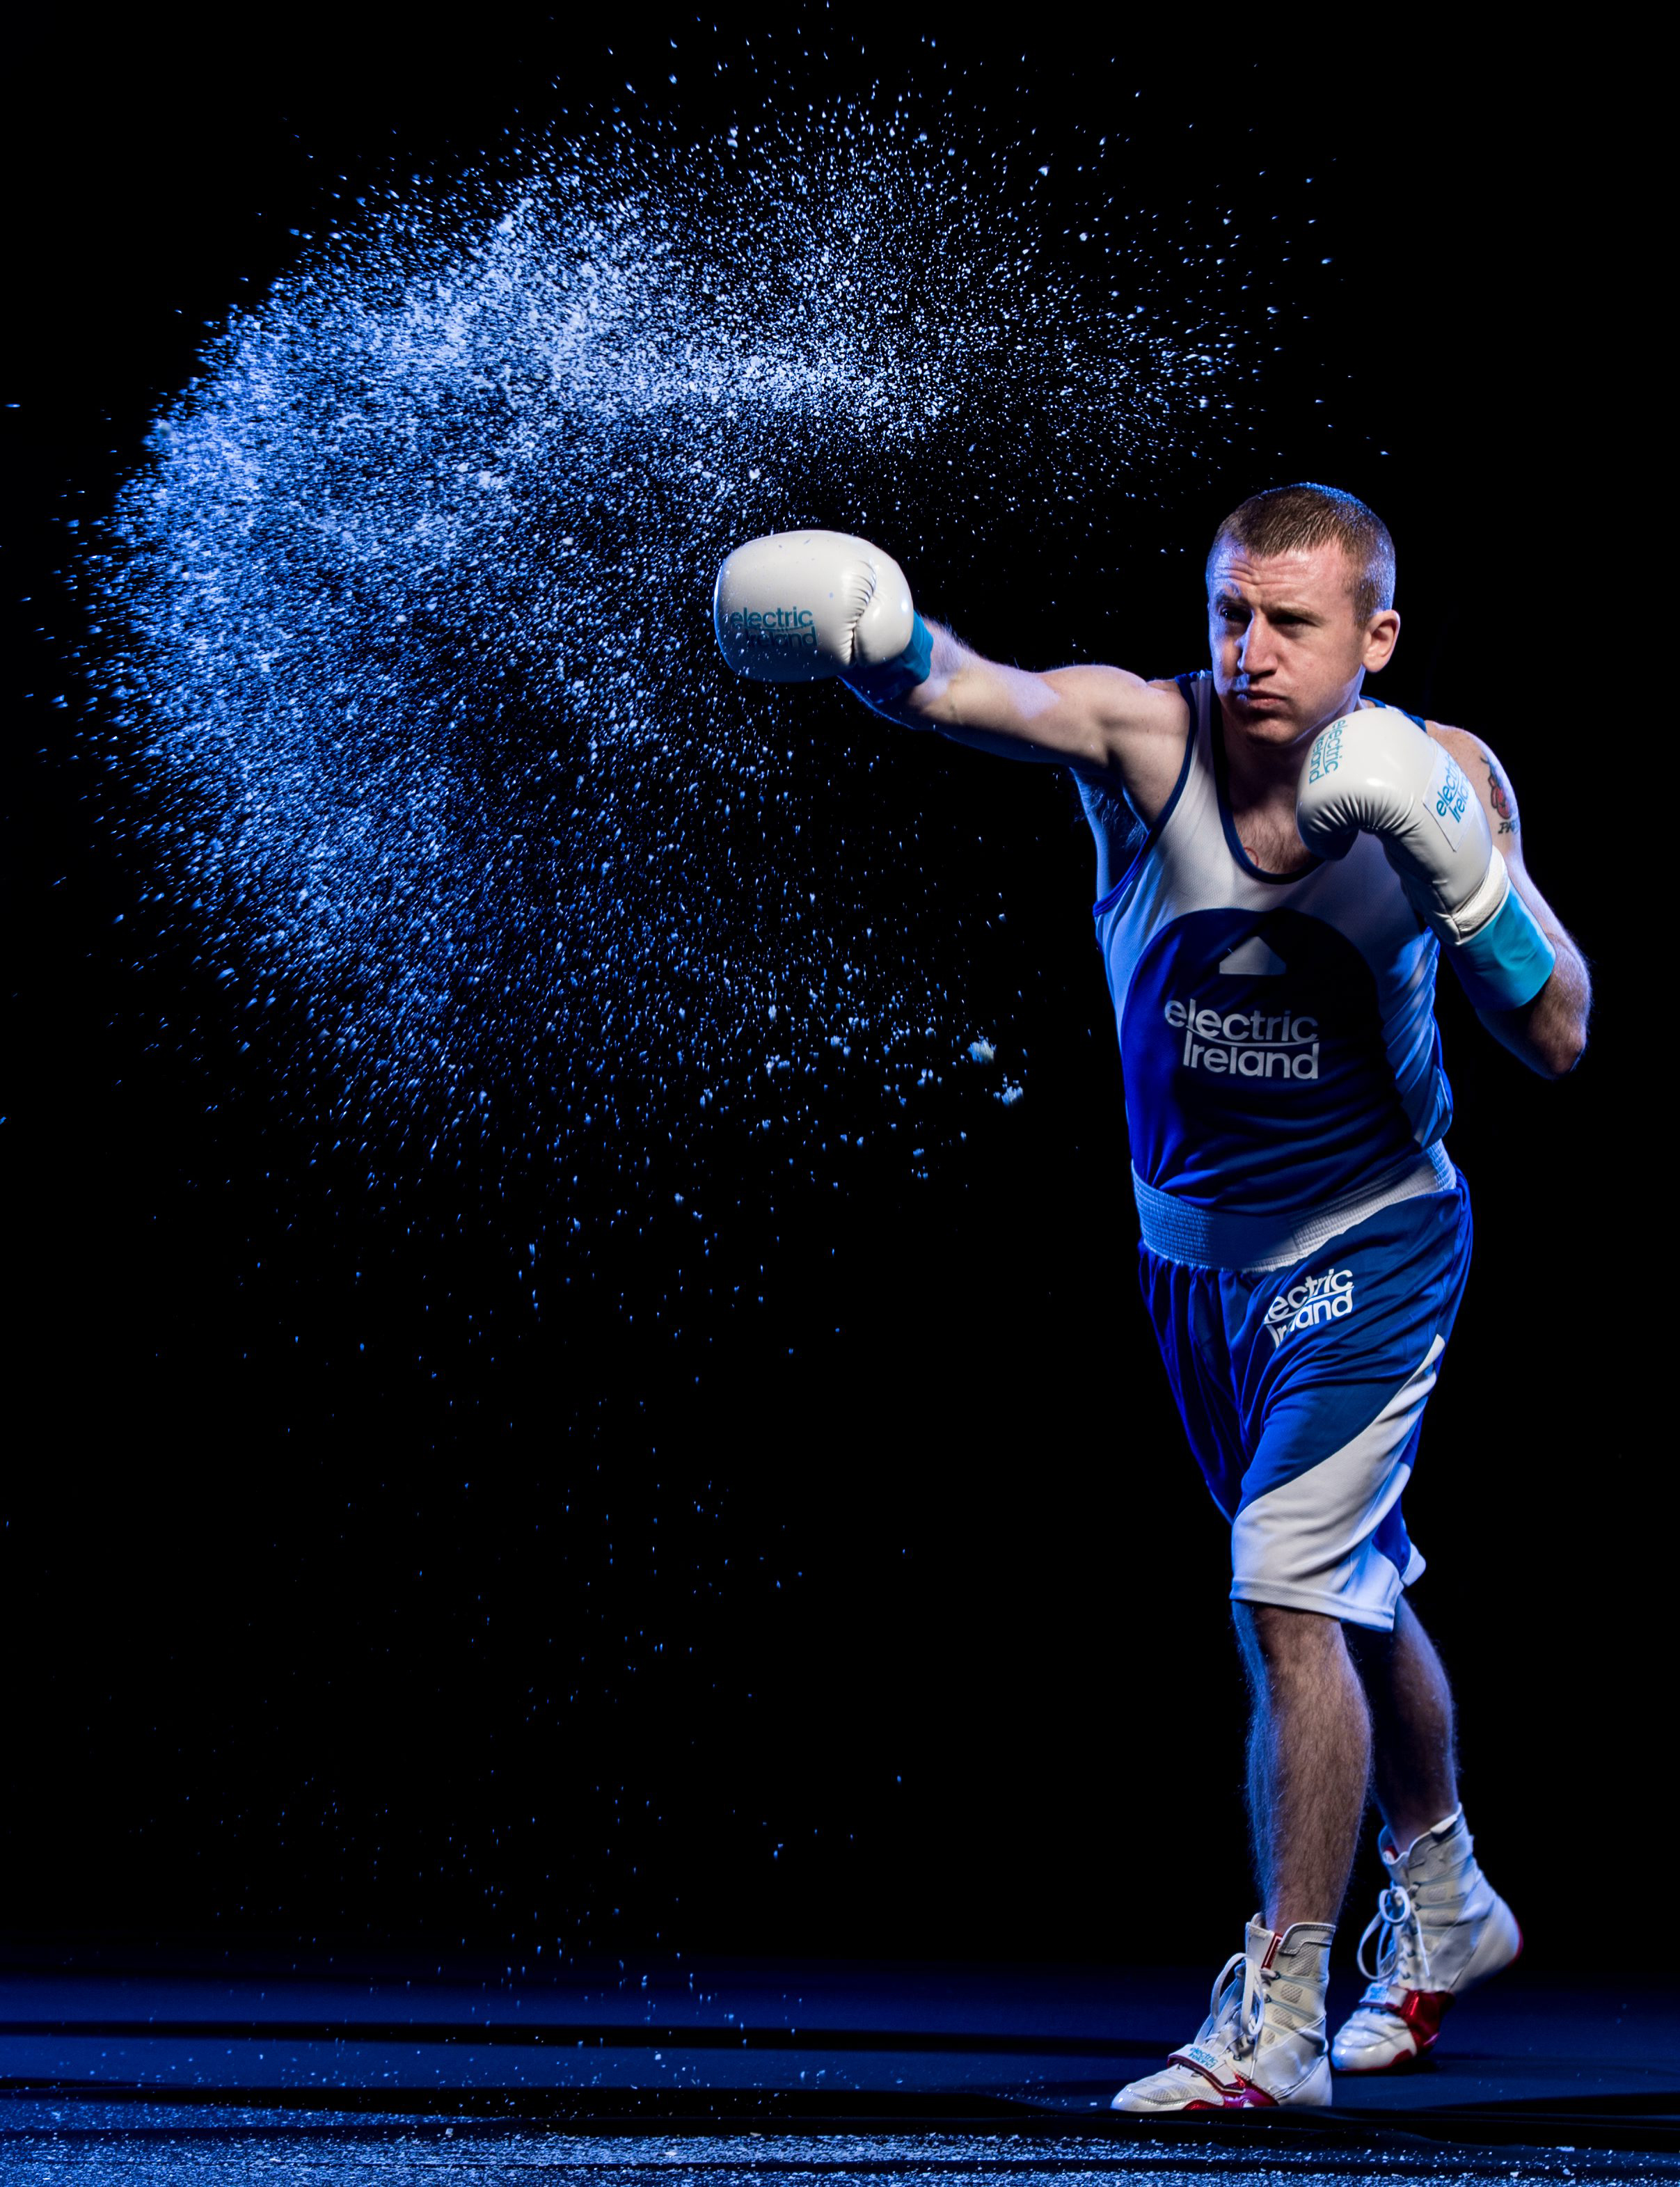 Double Olympic boxing medallist Paddy Barnes teamed up with Electric Ireland to announce its Smarter Living sponsorship of the Irish Olympic Team